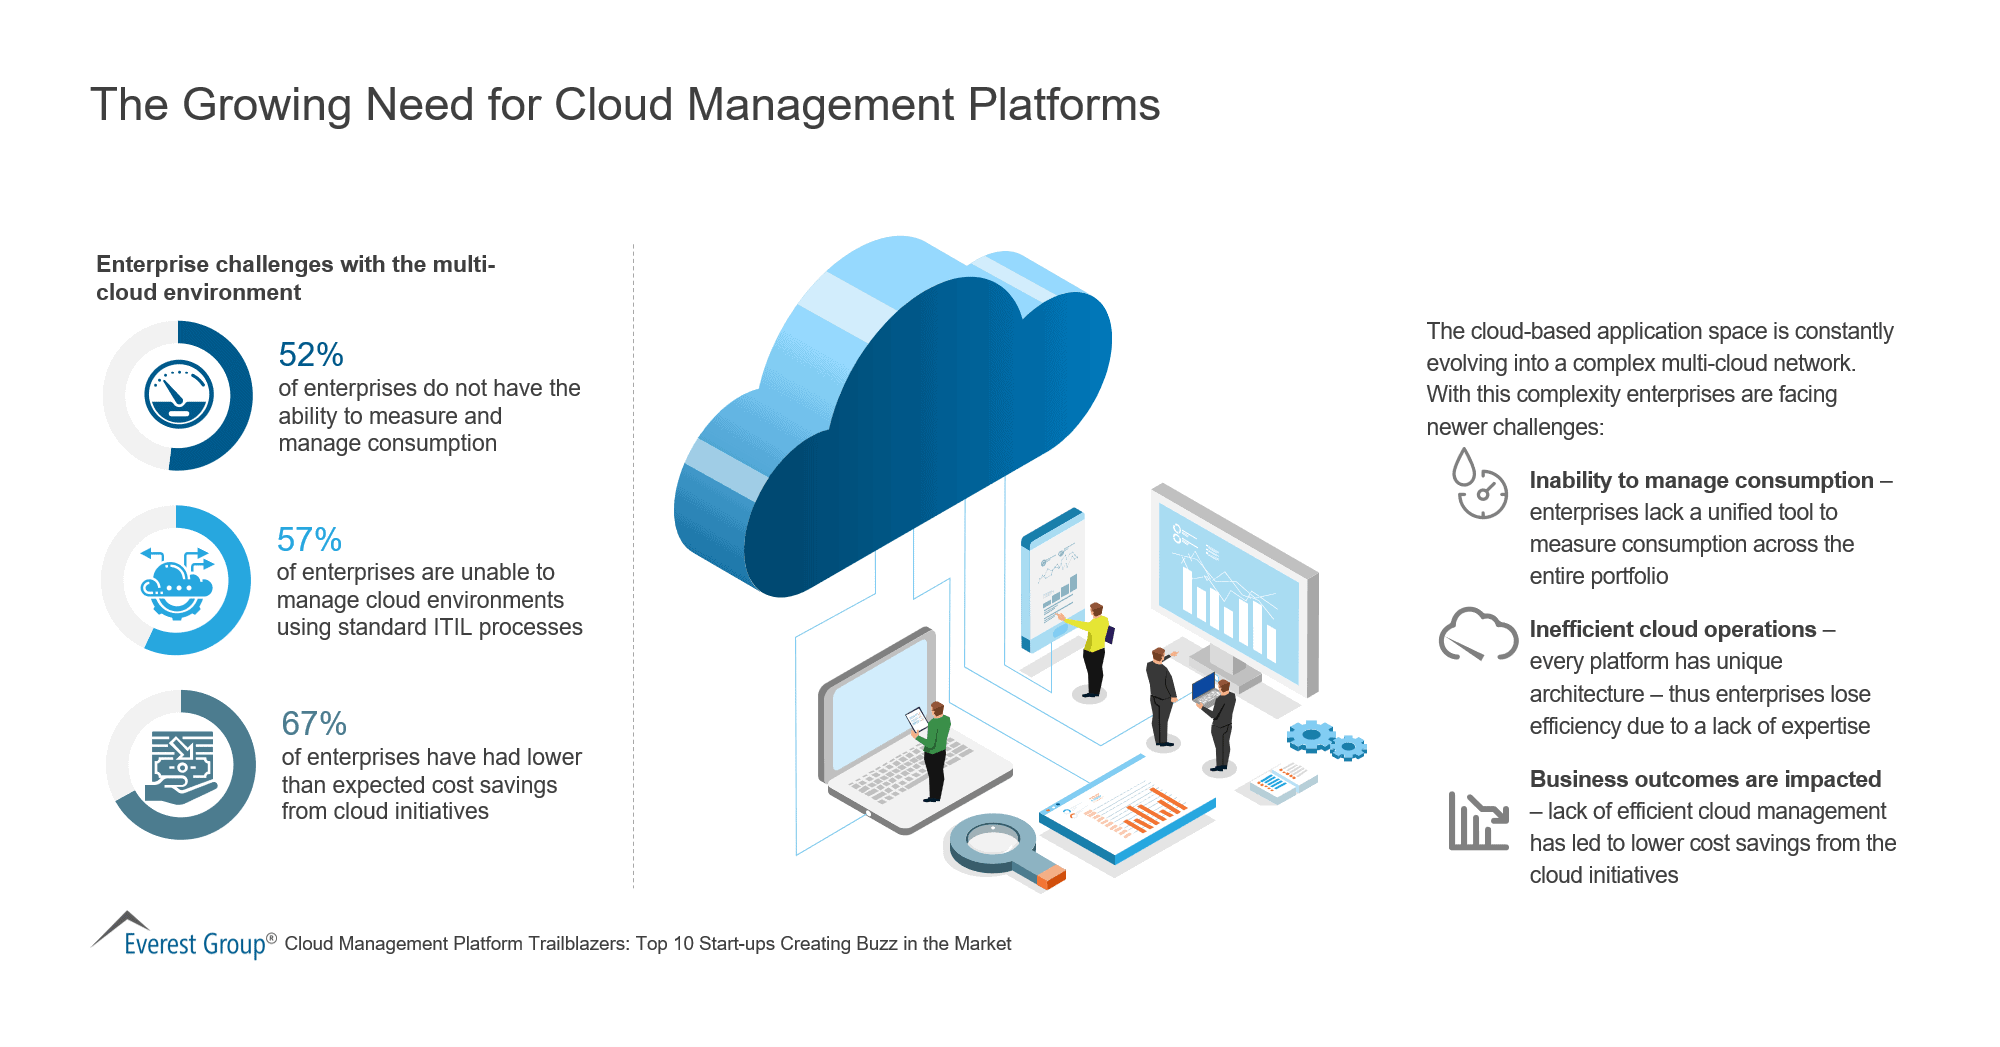 The Growing Need for Cloud Management Platforms